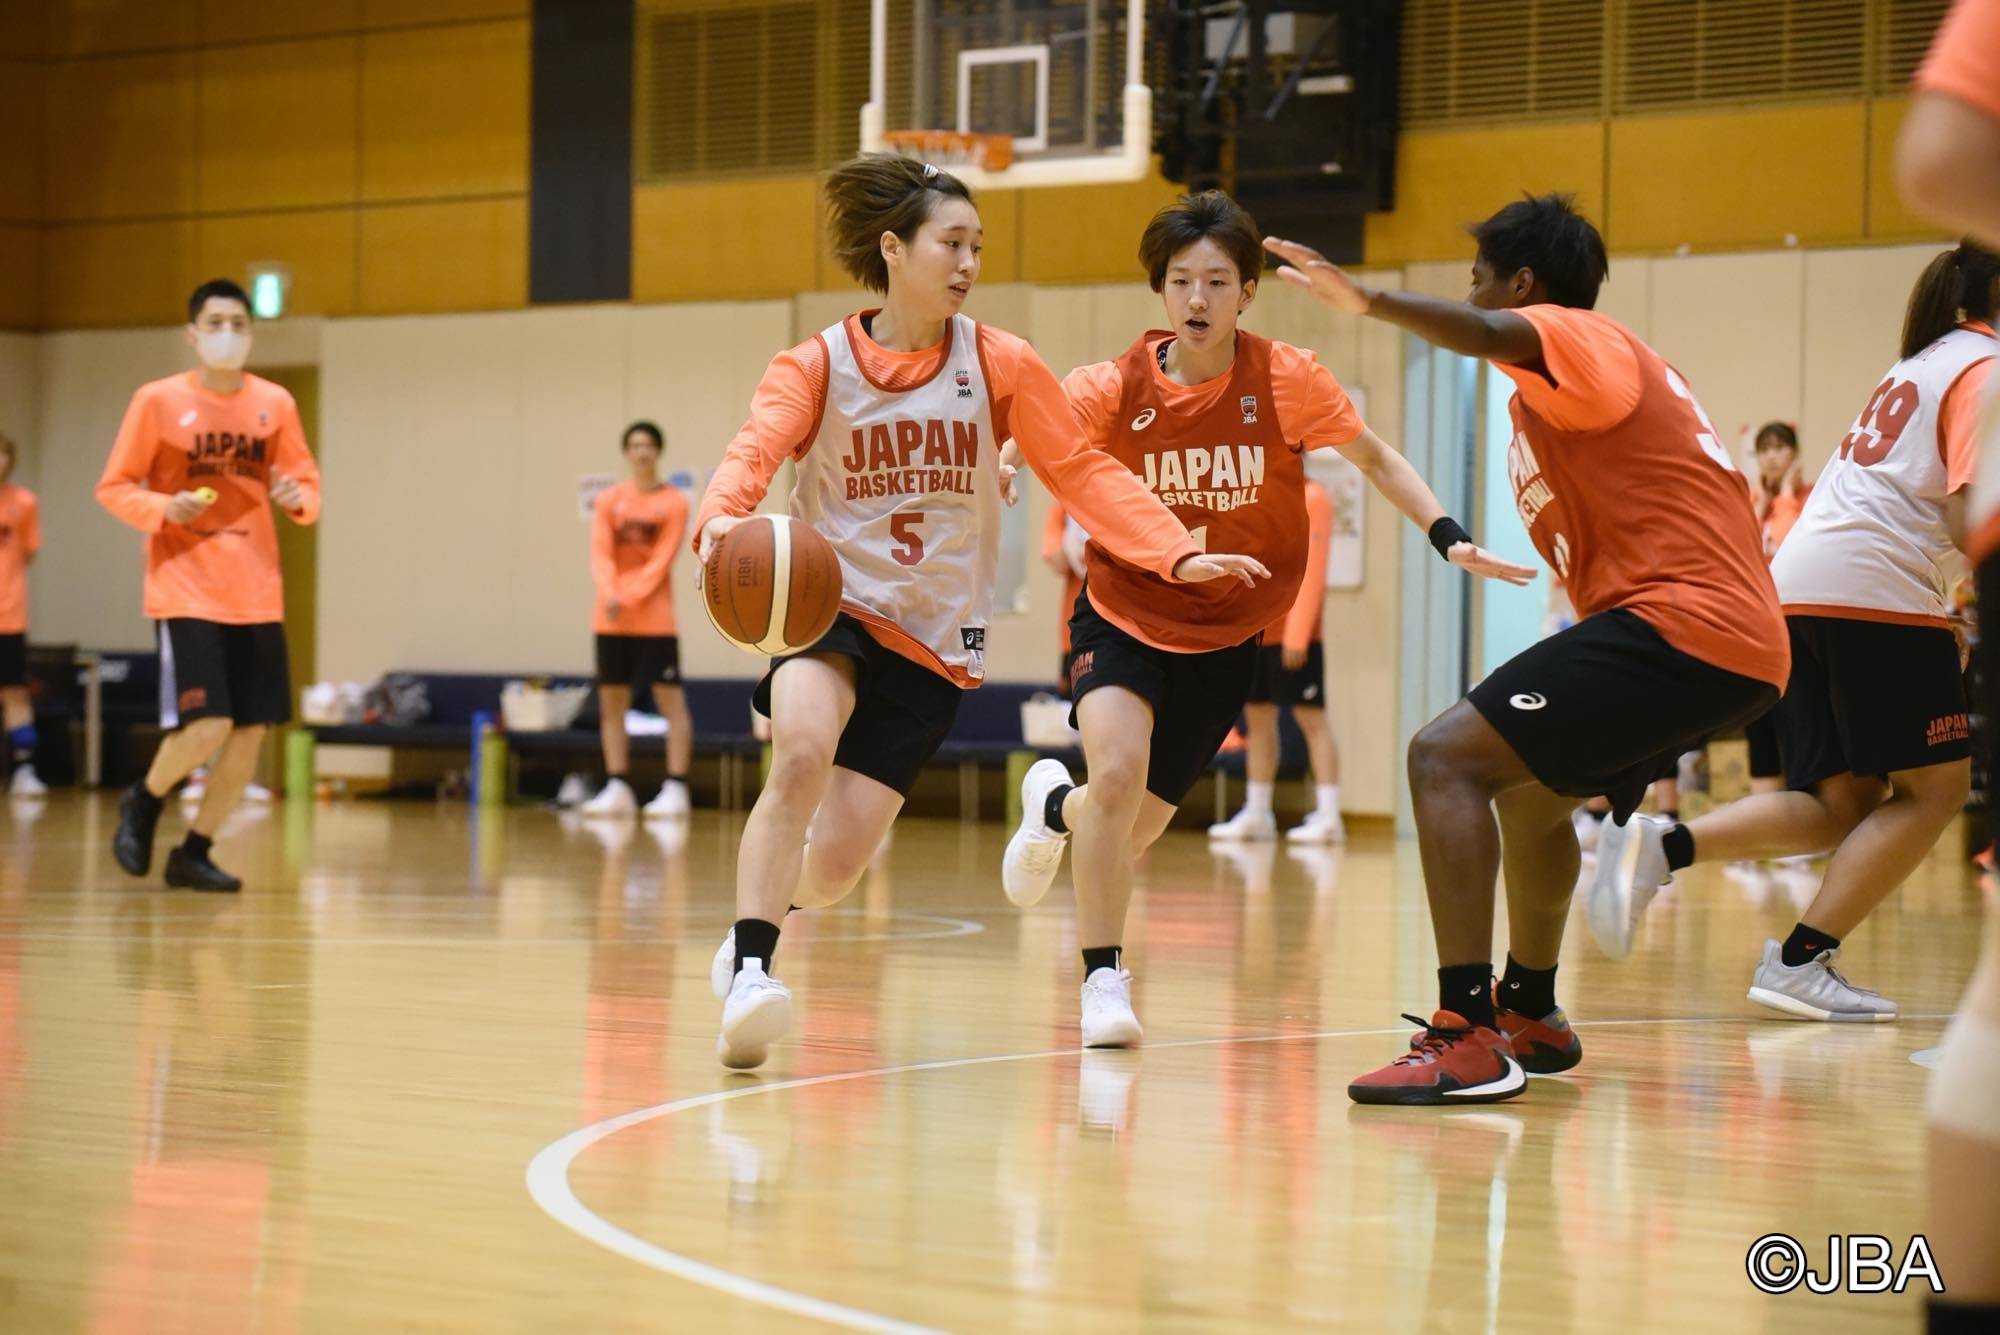 Guard Saori Miyazaki dribbles the ball during a Japan women's team training camp at Tokyo's National Training Center on Monday. | COURTESY OF THE JAPAN BASKETBALL ASSOCIATION